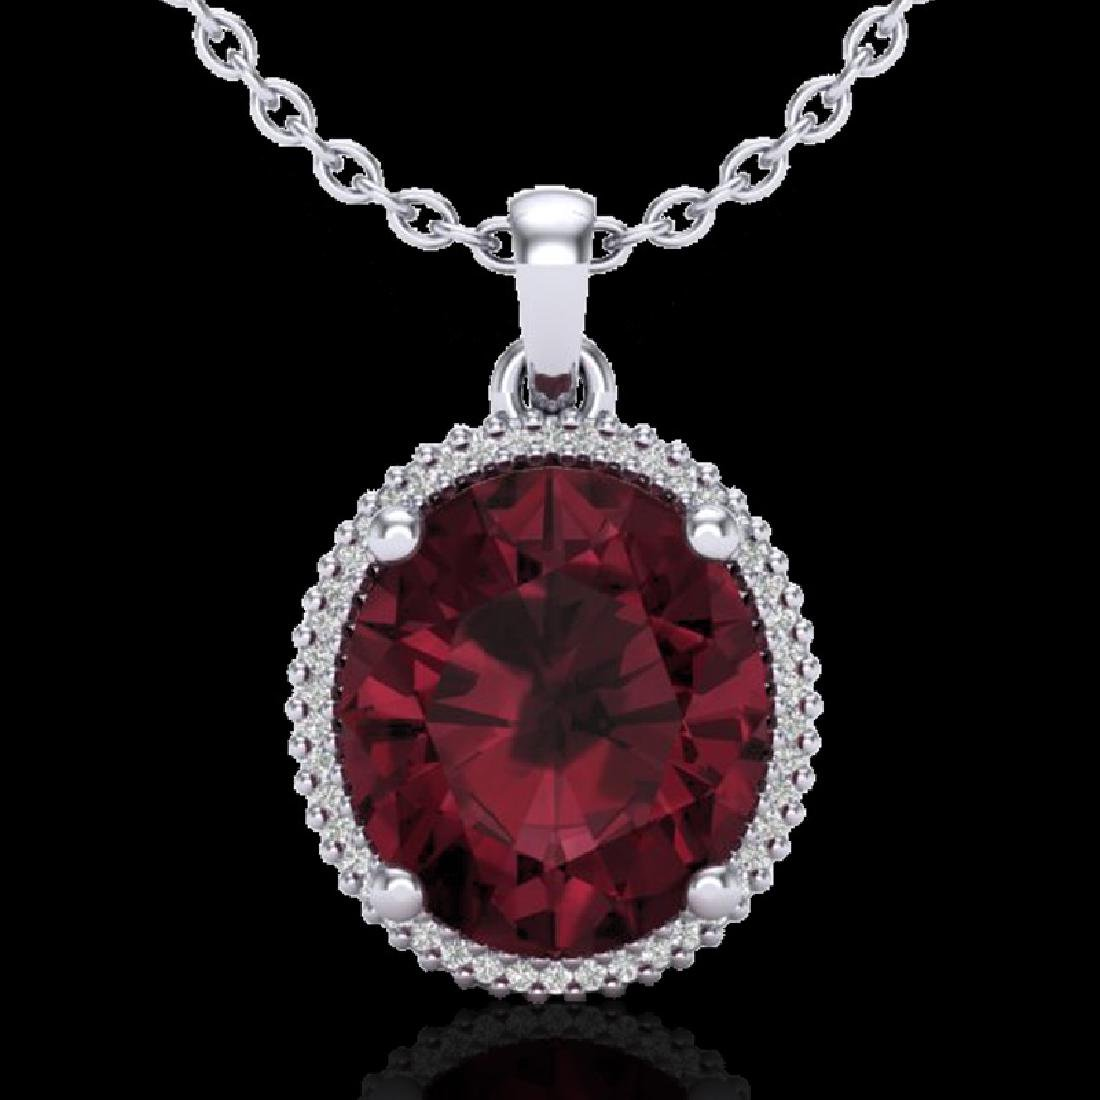 11 CTW Garnet & Micro Pave VS/SI Diamond Halo Necklace